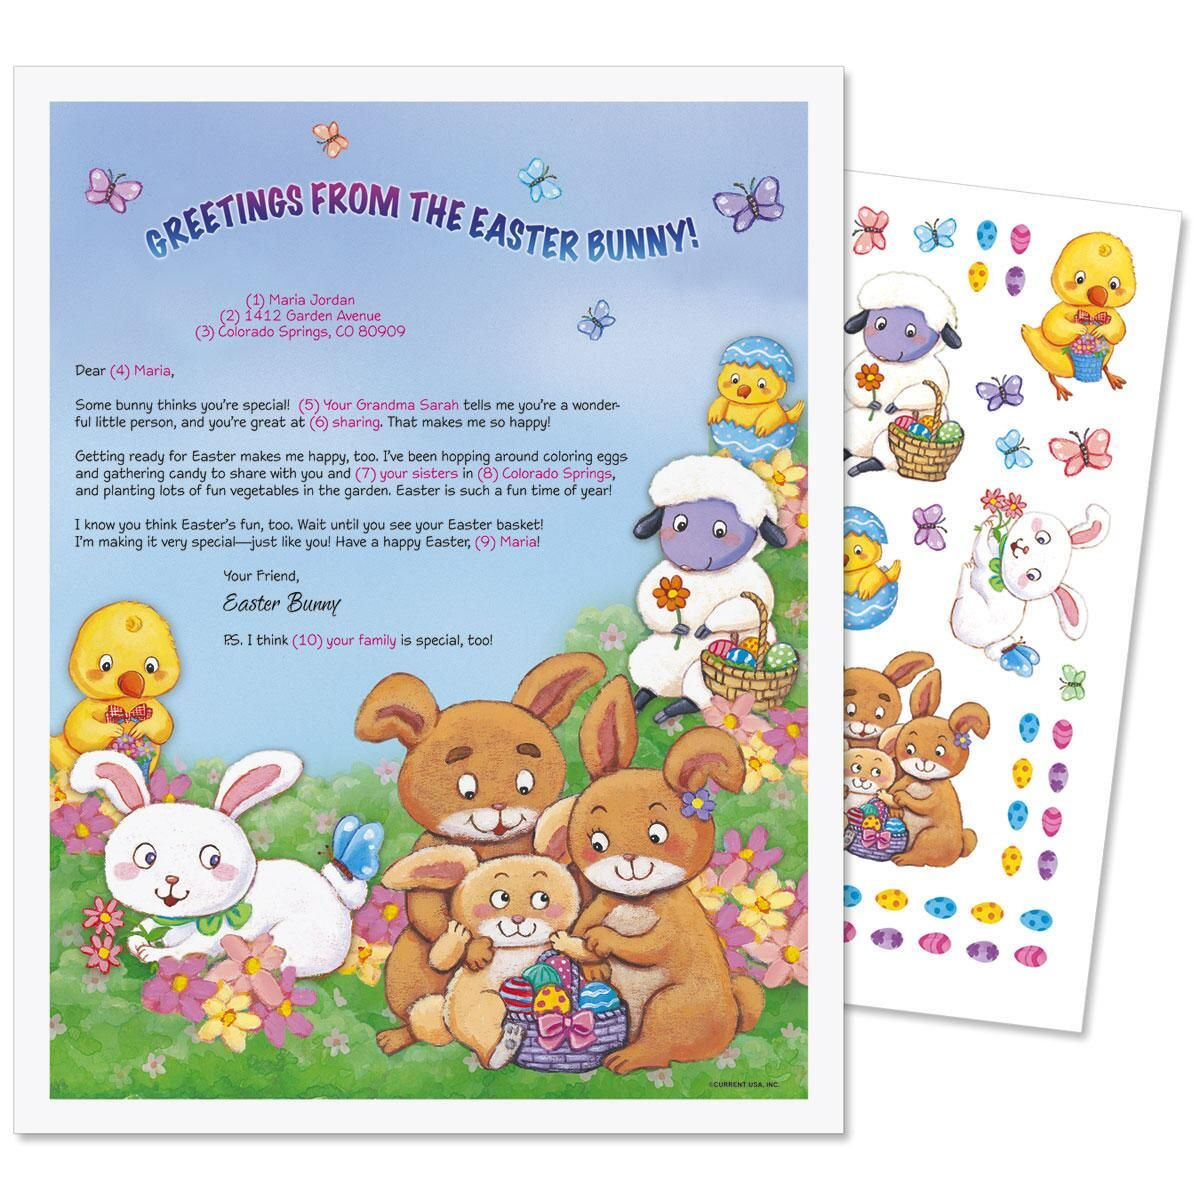 Easter Bunny Letter & Stickers